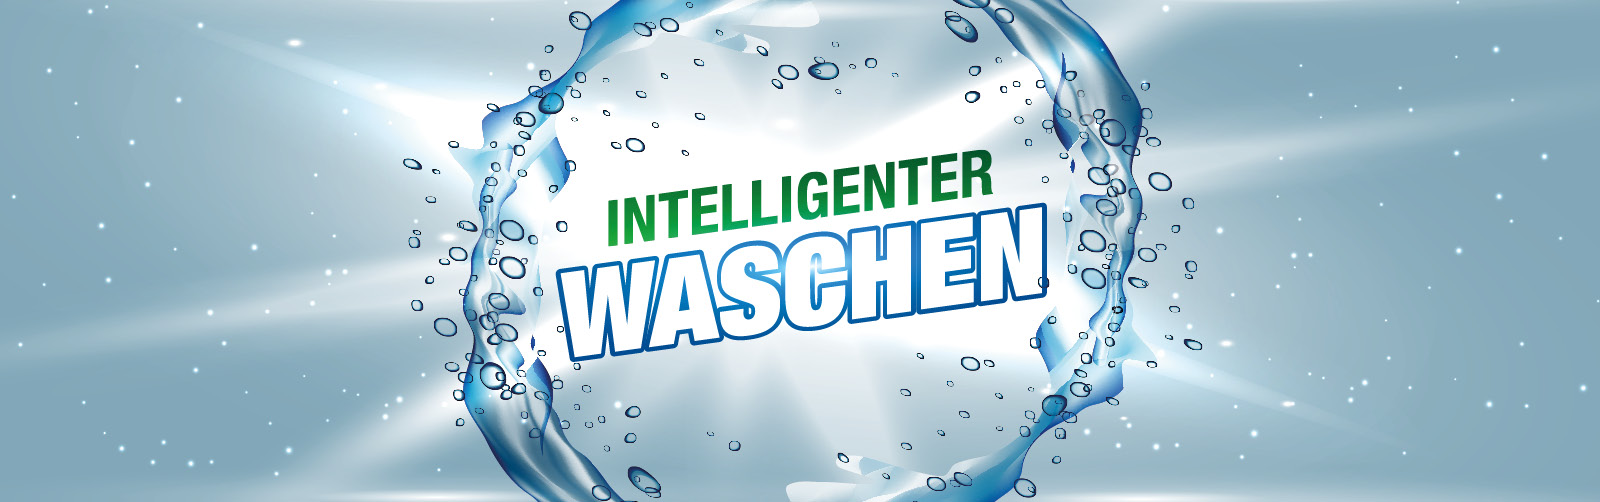 Intelligenter Waschen_start.jpg